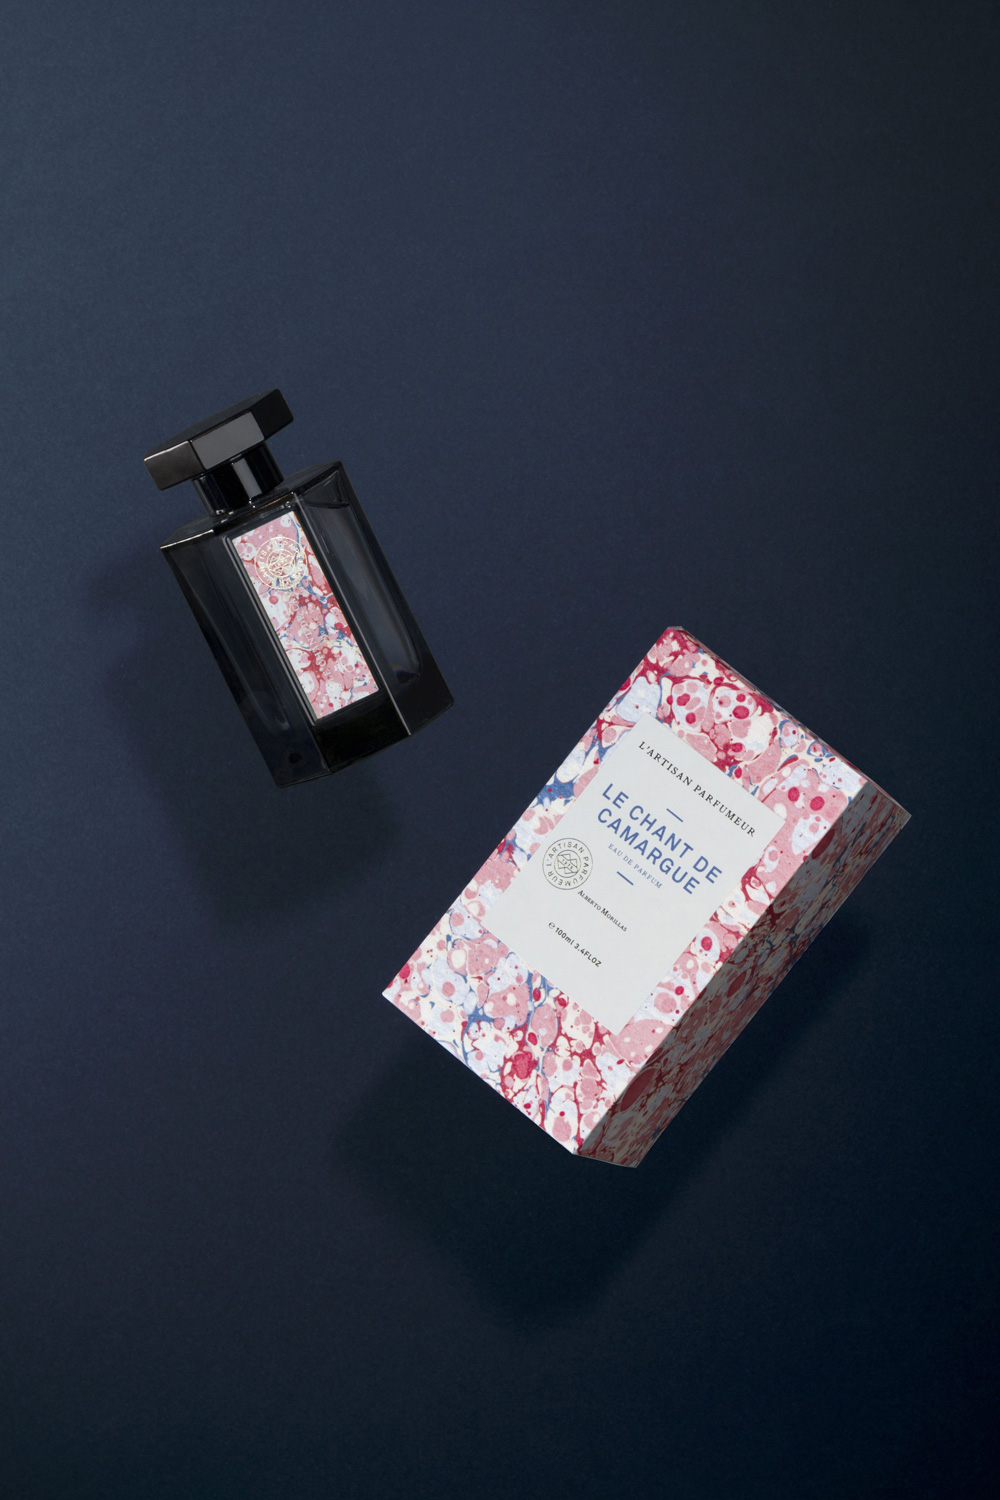 Le Chant de Camargue - packaging design